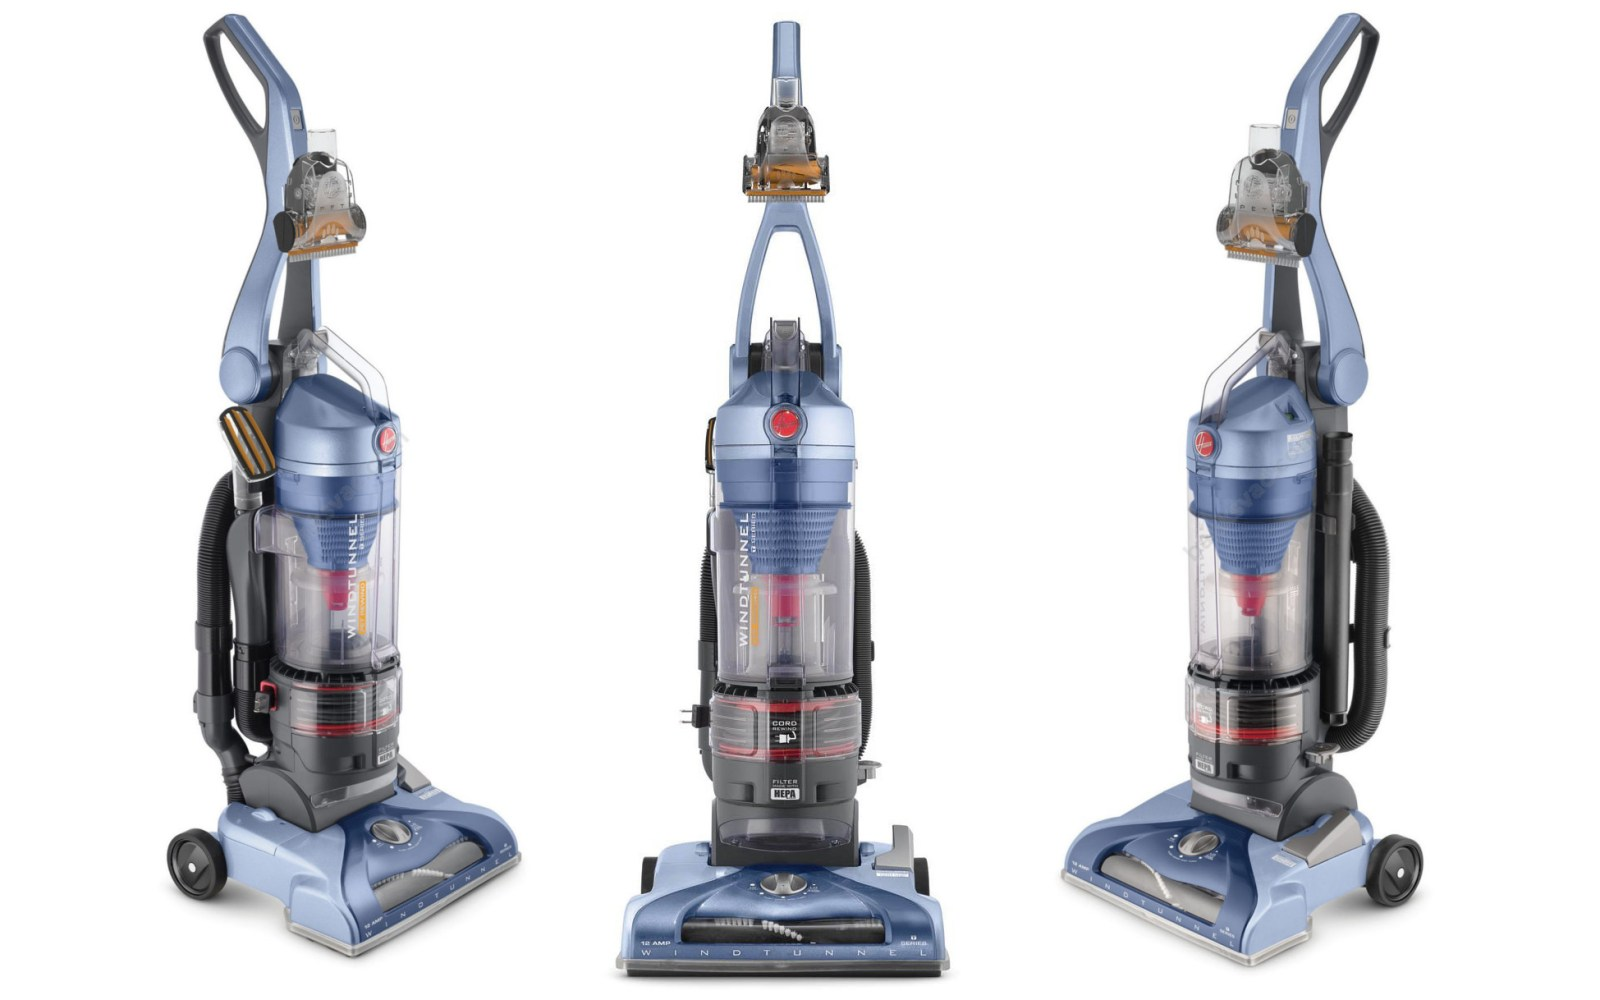 Home: Hoover T-Series Upright Vac $75 (Orig. $150), up to 70% off highly rated Dorcy flashlights from $5 or less, more